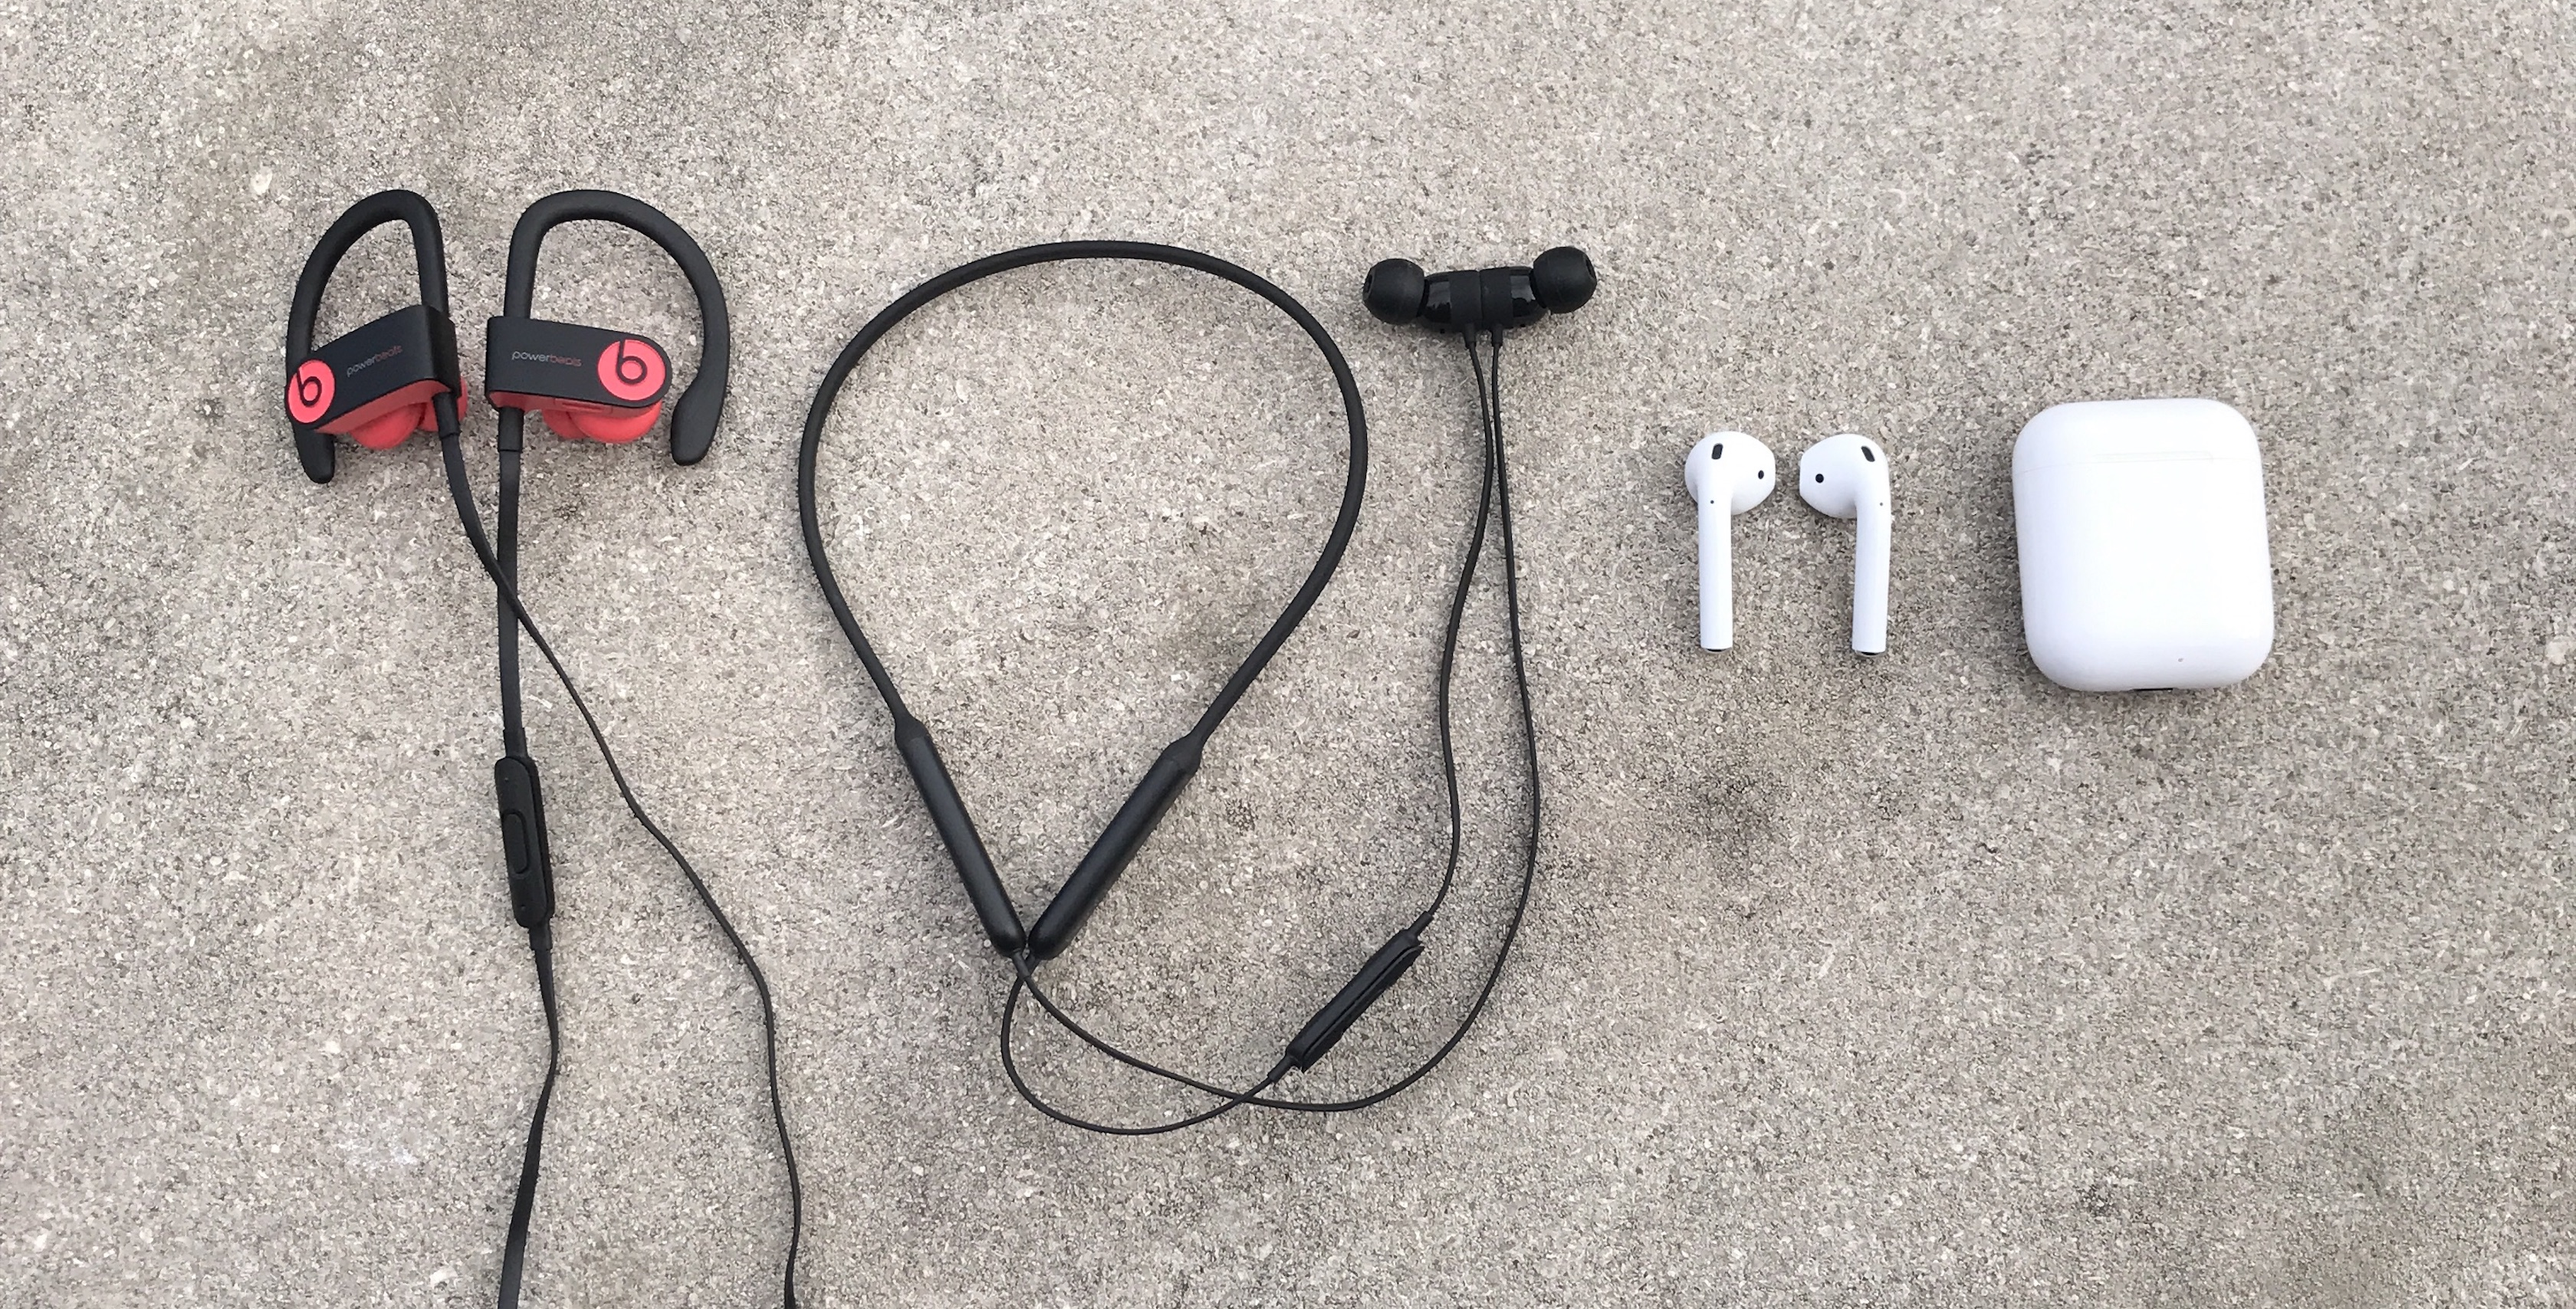 a week with beatsx how apple\u0027s latest w1 earbuds compare to airpods Headset Diagram a week with beatsx how apple\u0027s latest w1 earbuds compare to airpods \u0026 powerbeats3